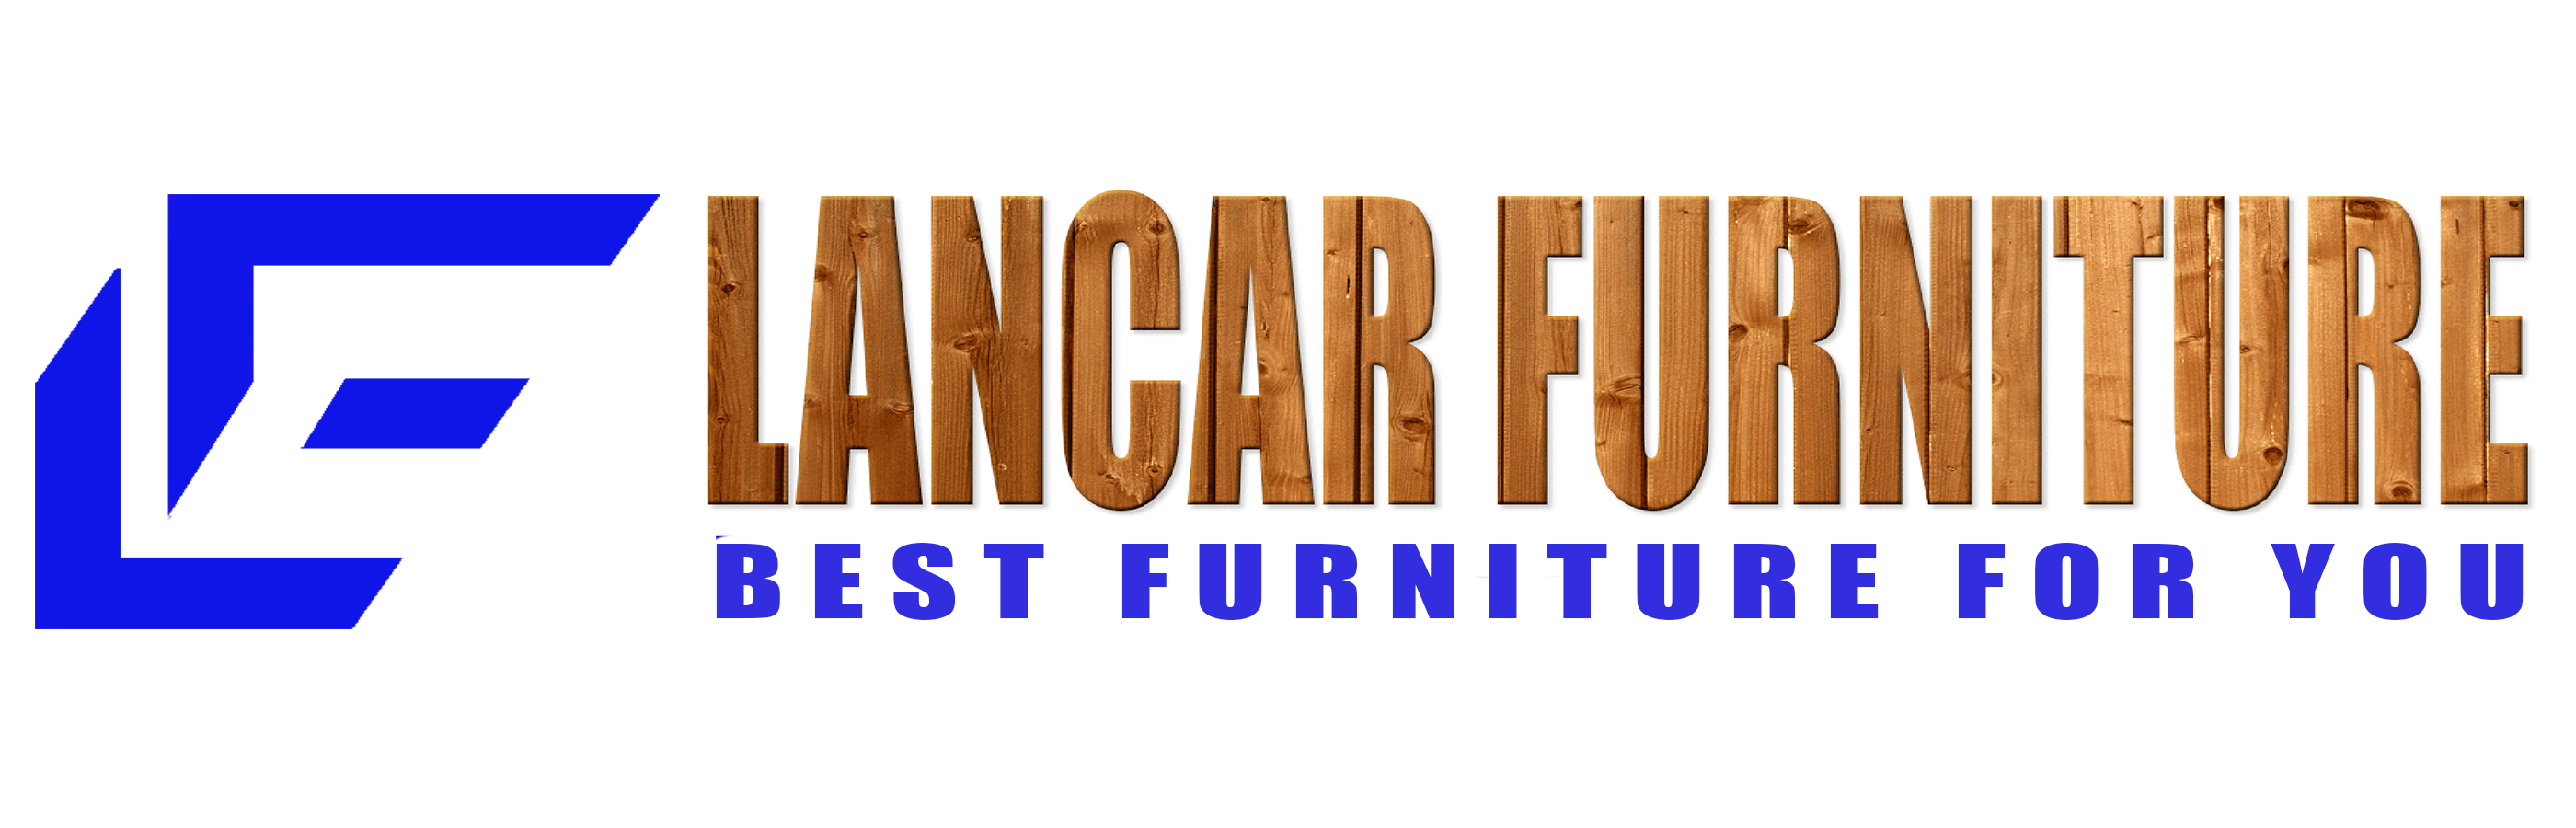 LANCAR FURNITURE